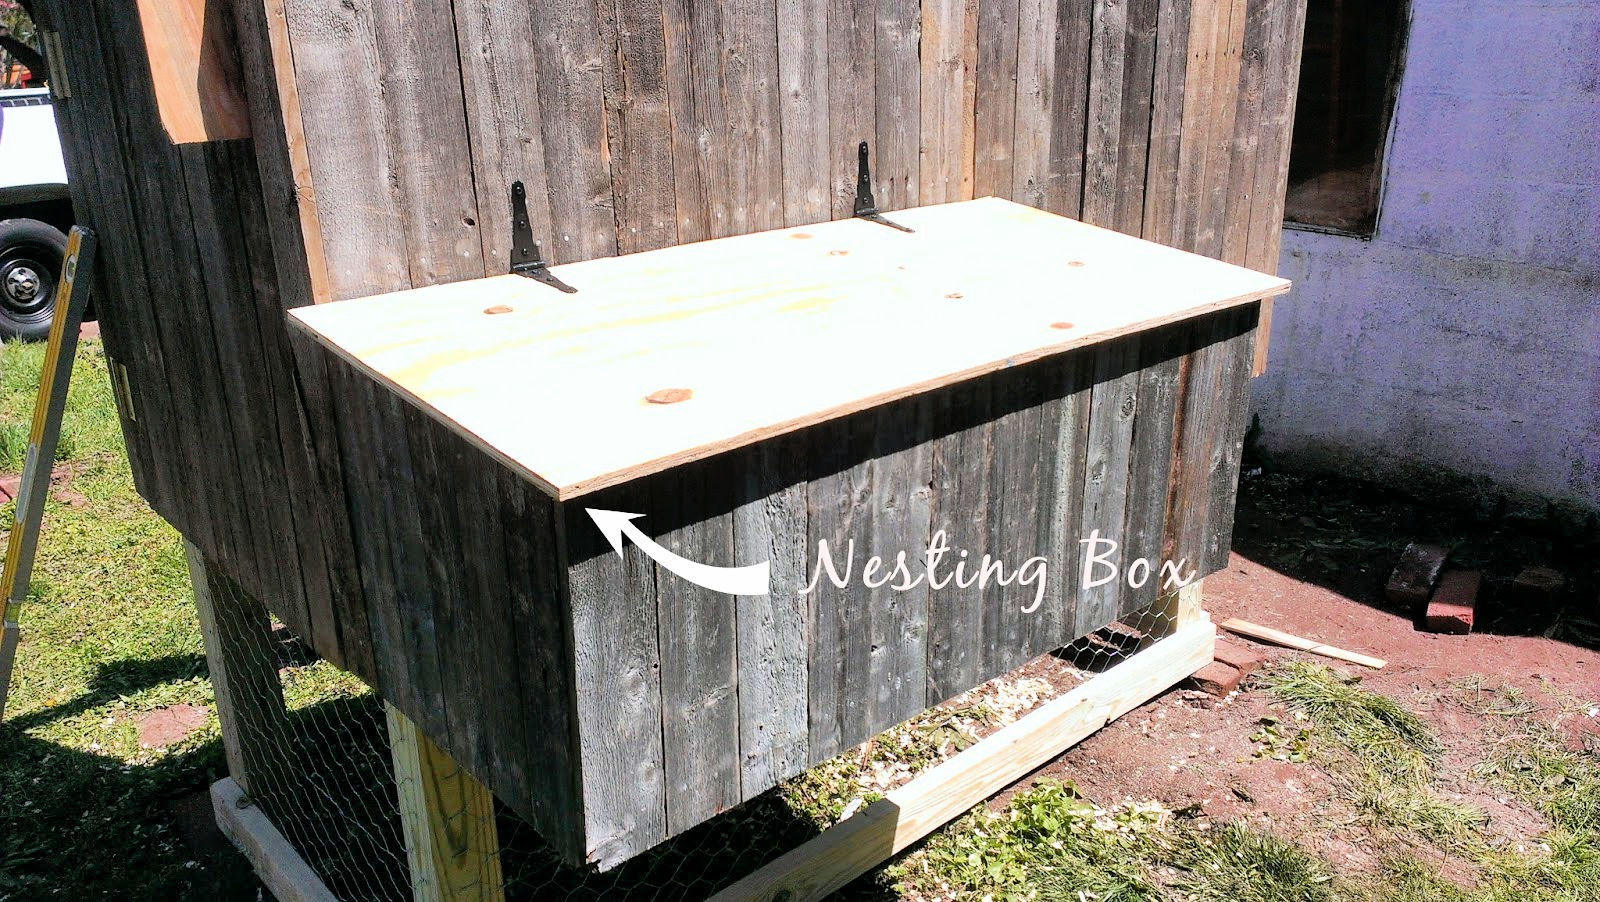 nesting box was also paneled